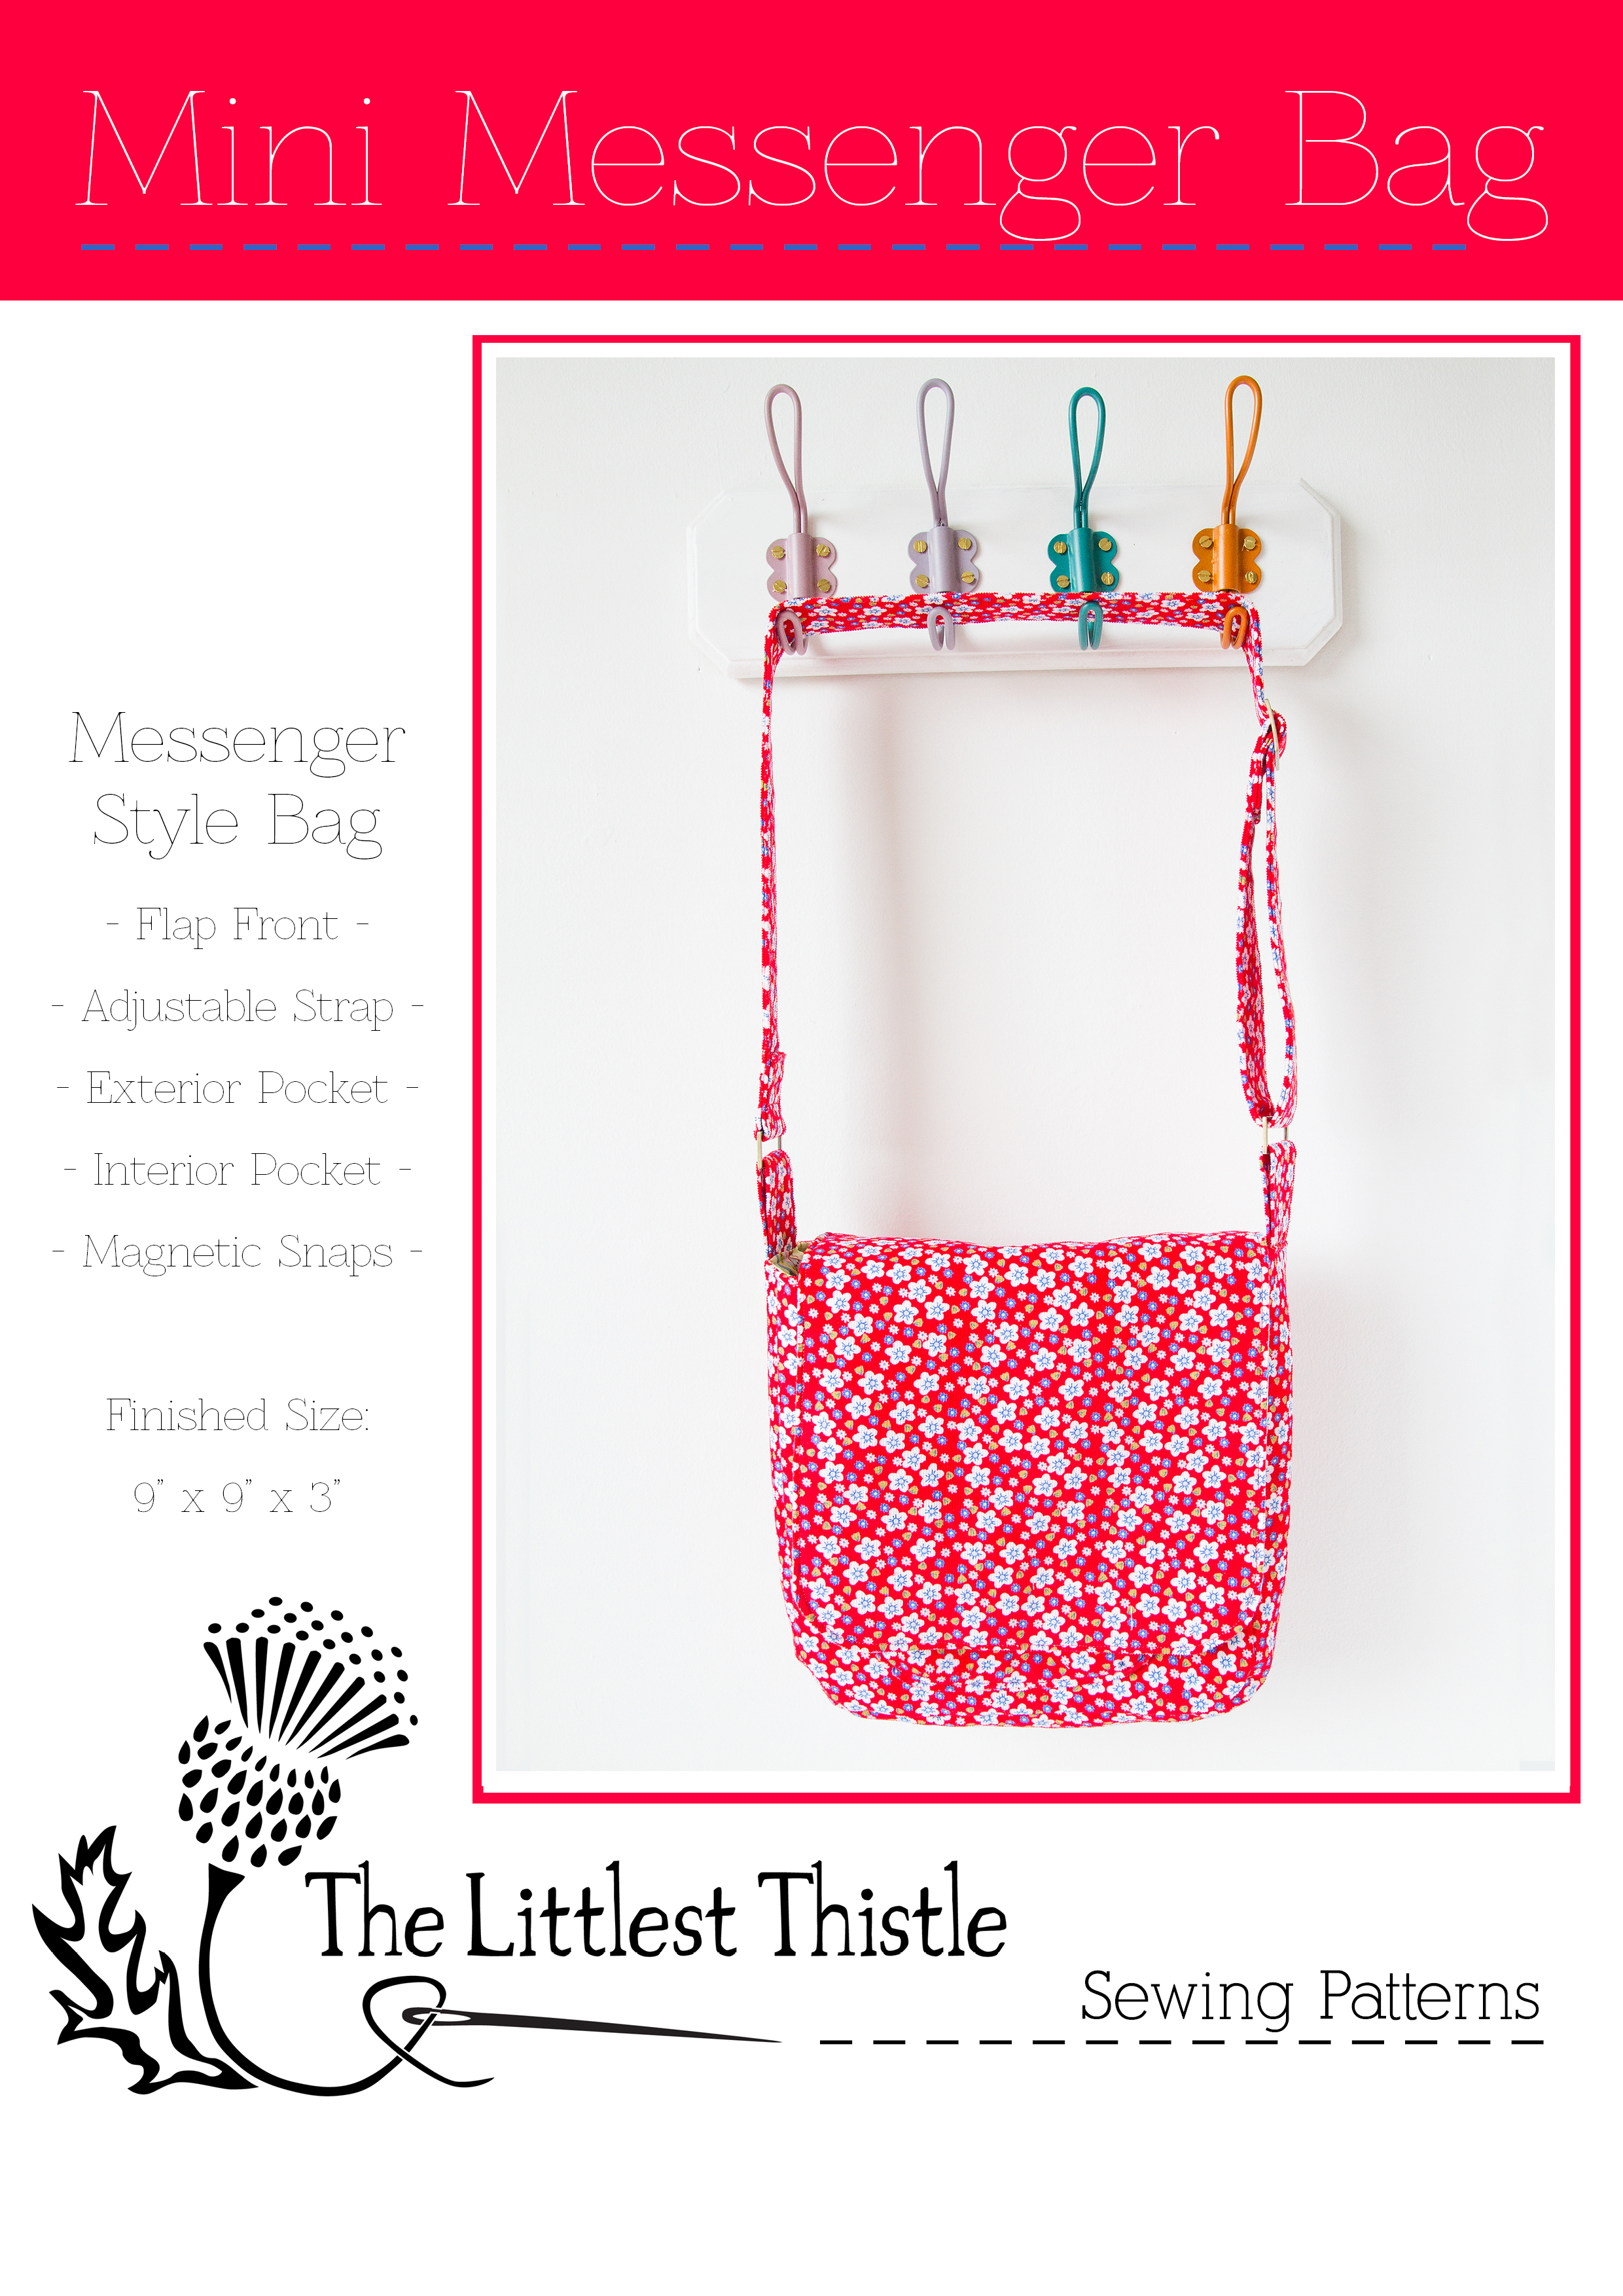 Mini Messenger Bag PDF Pattern | The Littlest Thistle